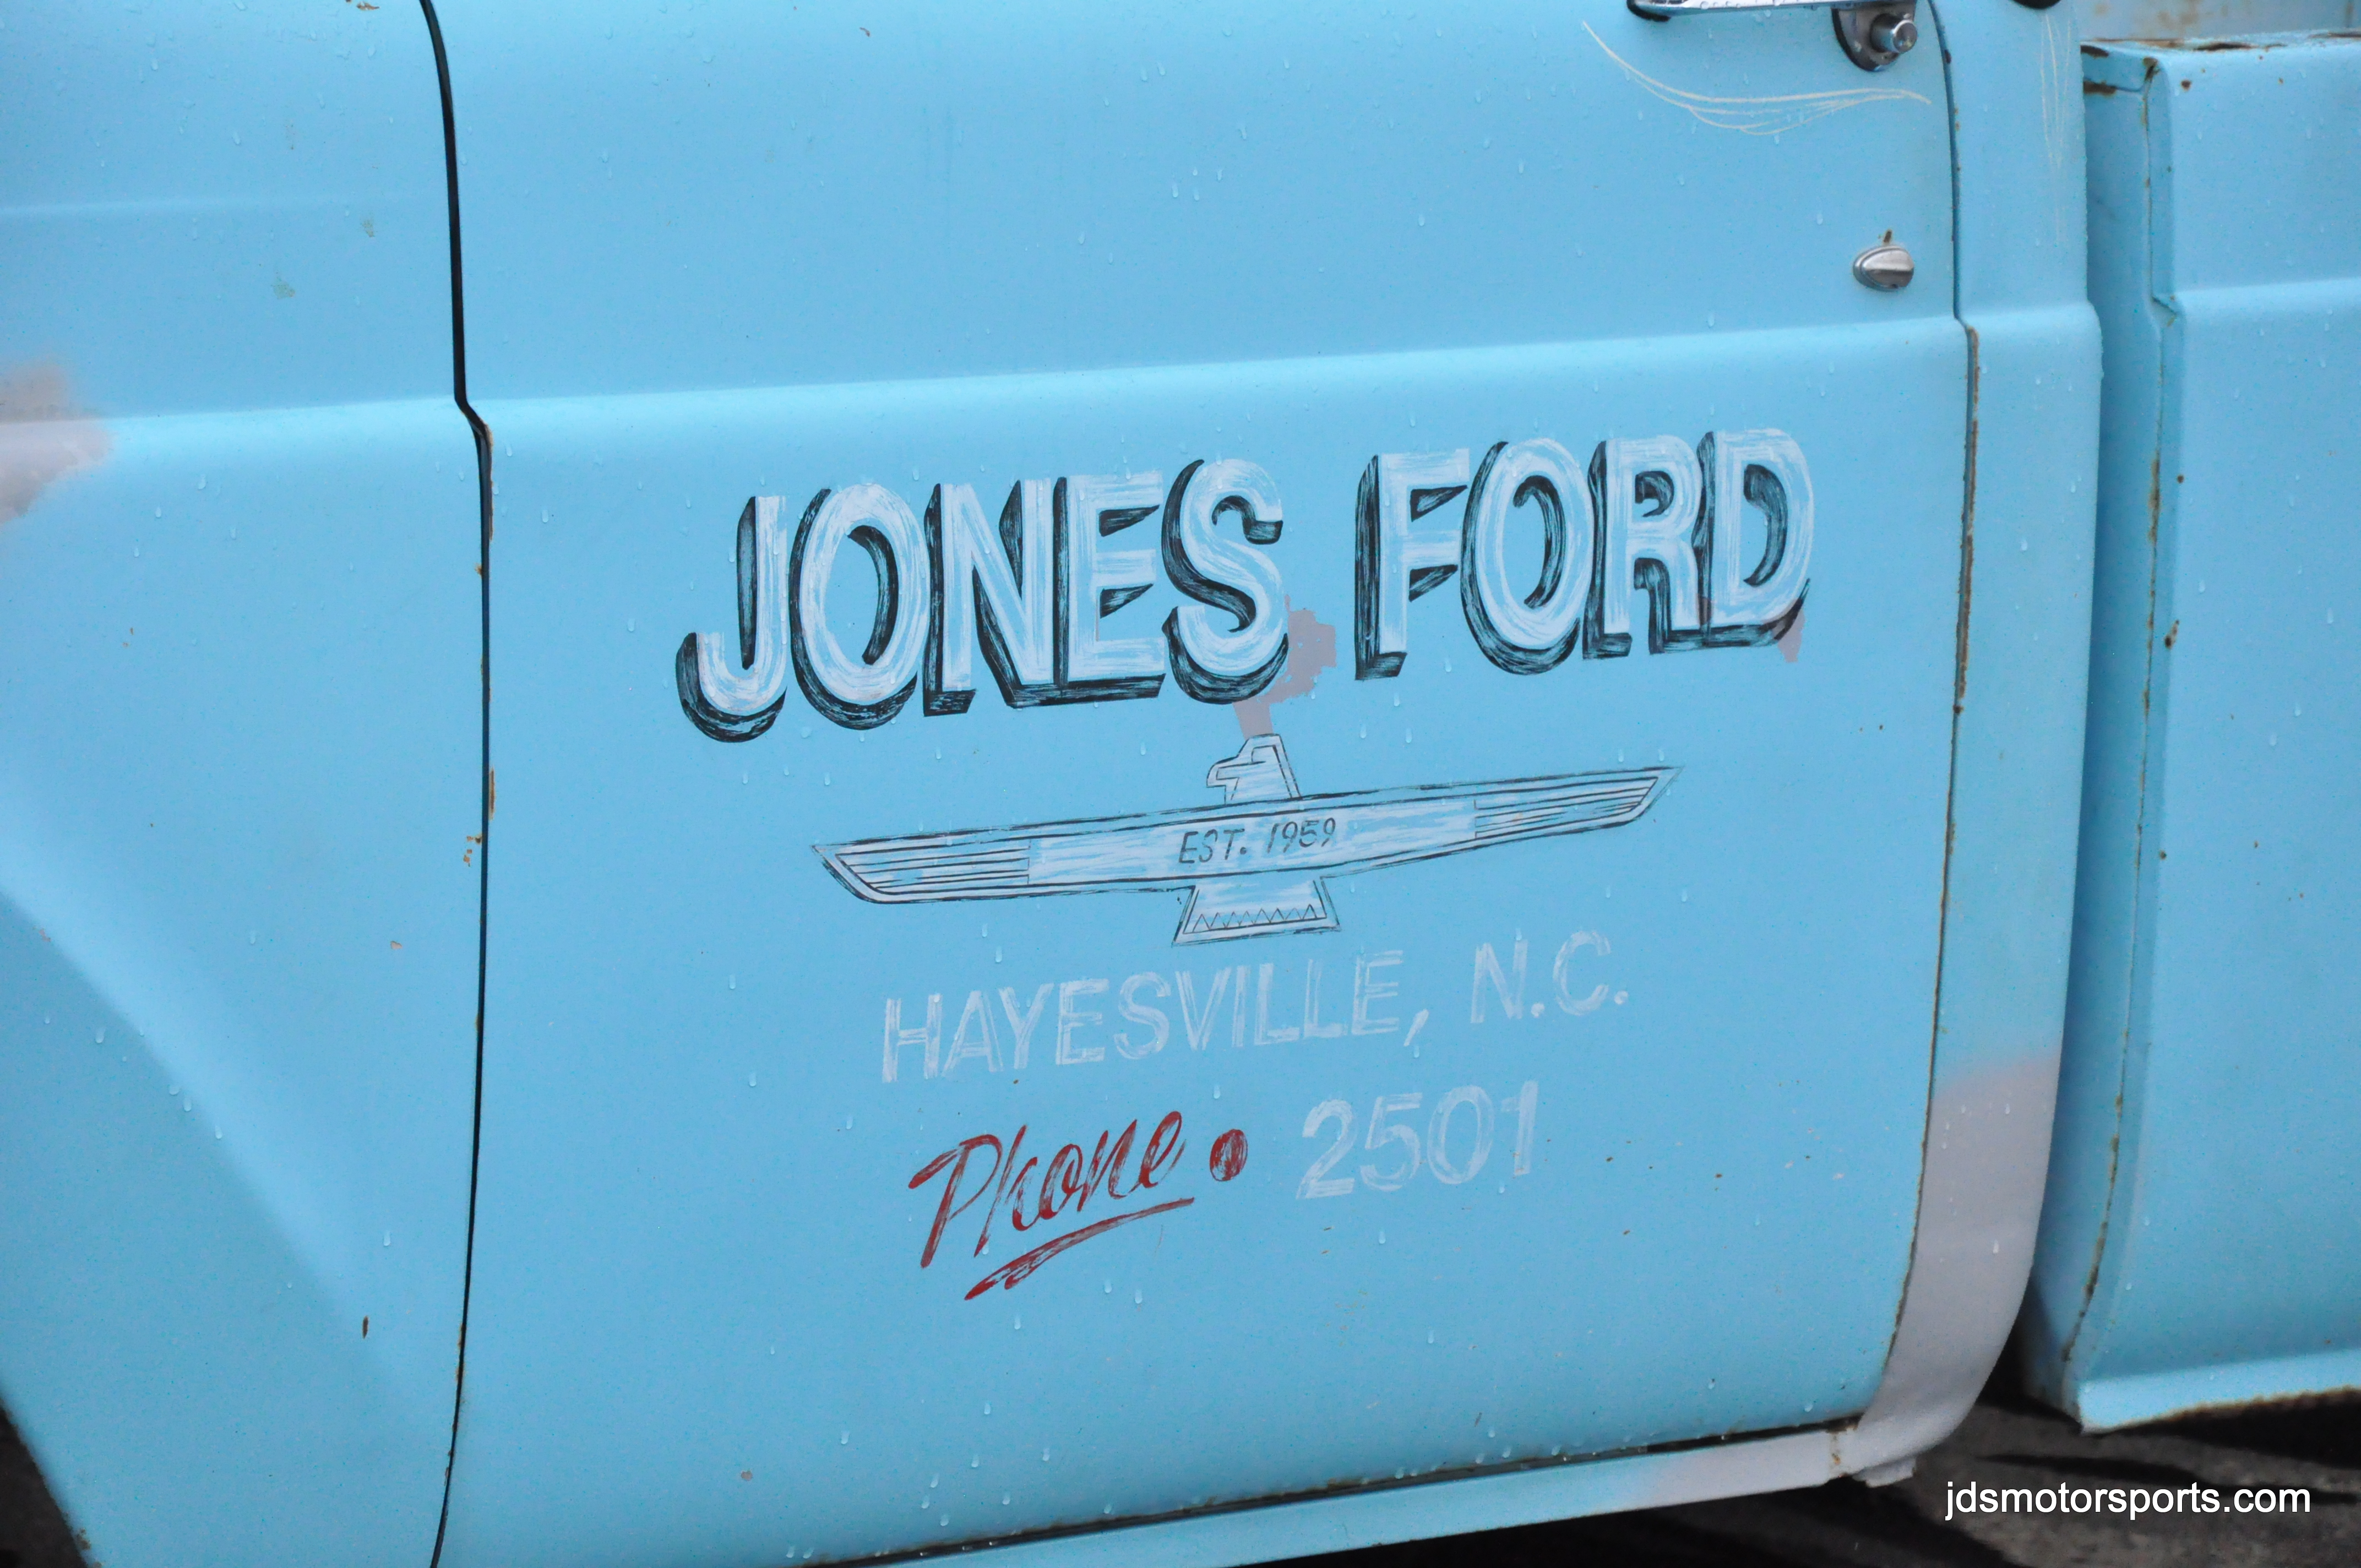 Jacky Jones Ford Hayesville NC Cruise In 5 19 2012